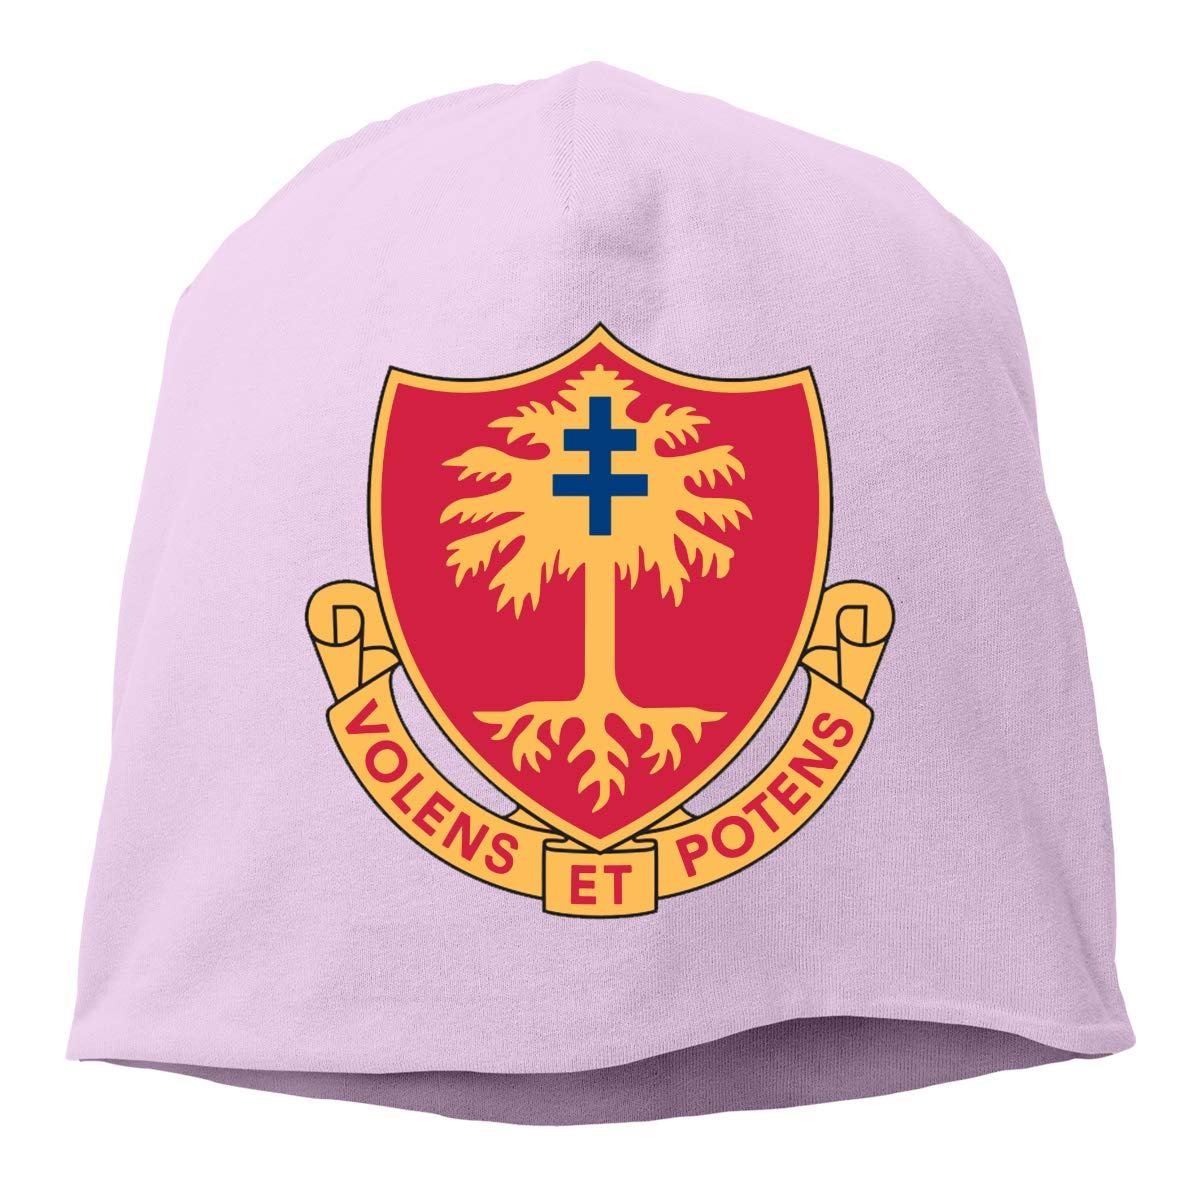 United States Army 319th Field Artillery Regiment Beanie Cap Quick Drying Fashion Cap Dad Hat